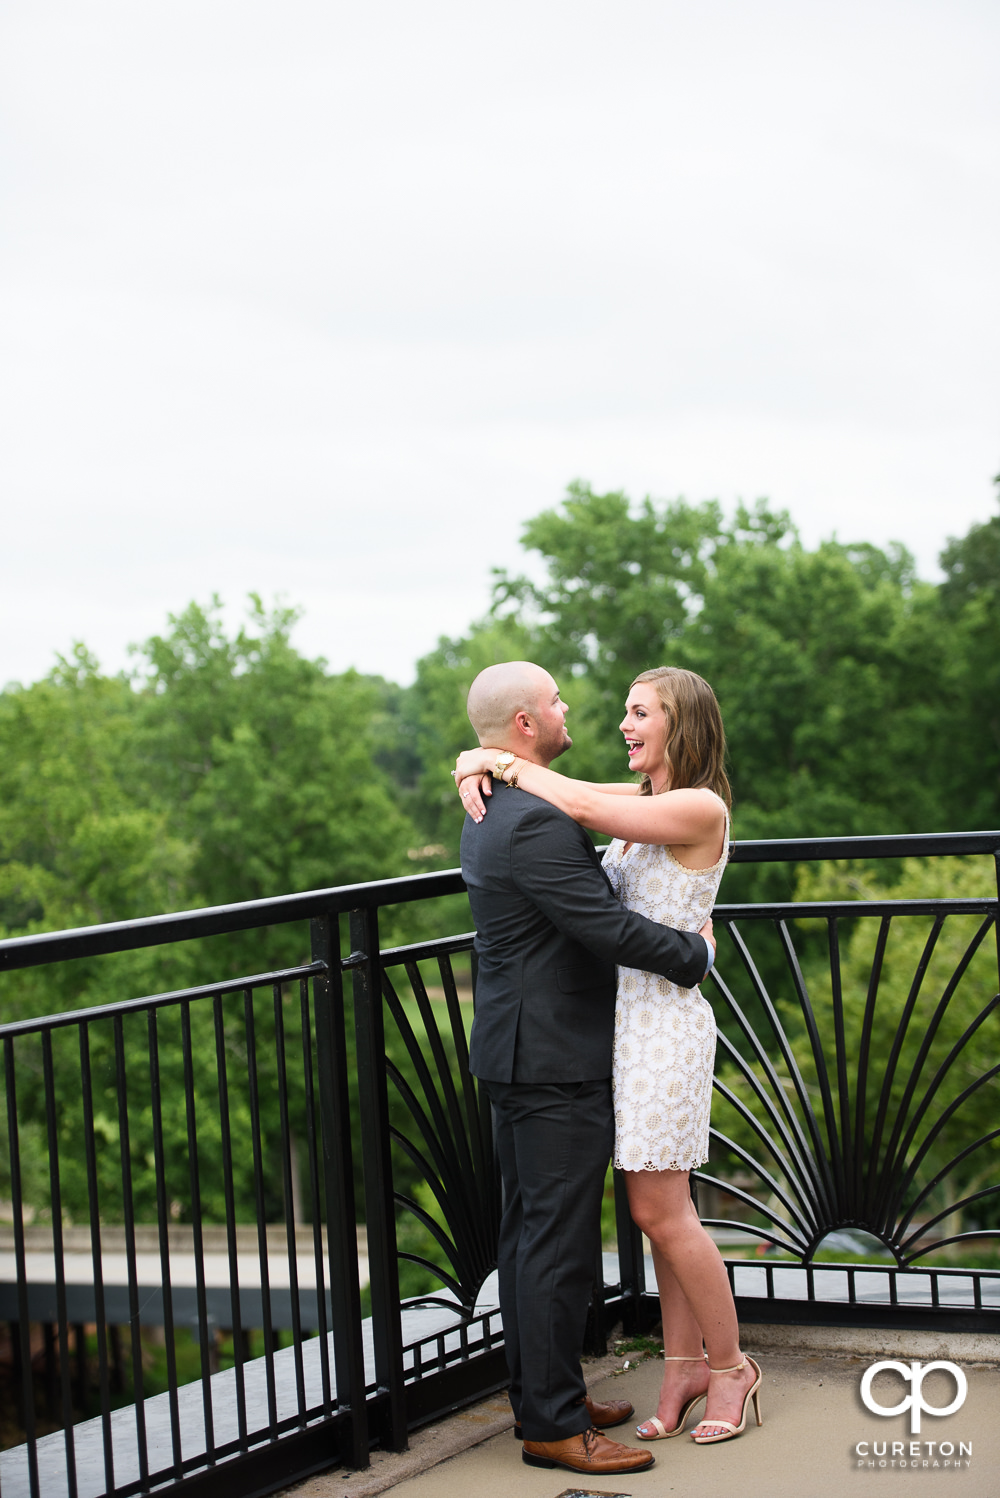 Engaged couple hugging at their wedding rehearsal dinner at the Thornblade Country Club in Greenville , SC .